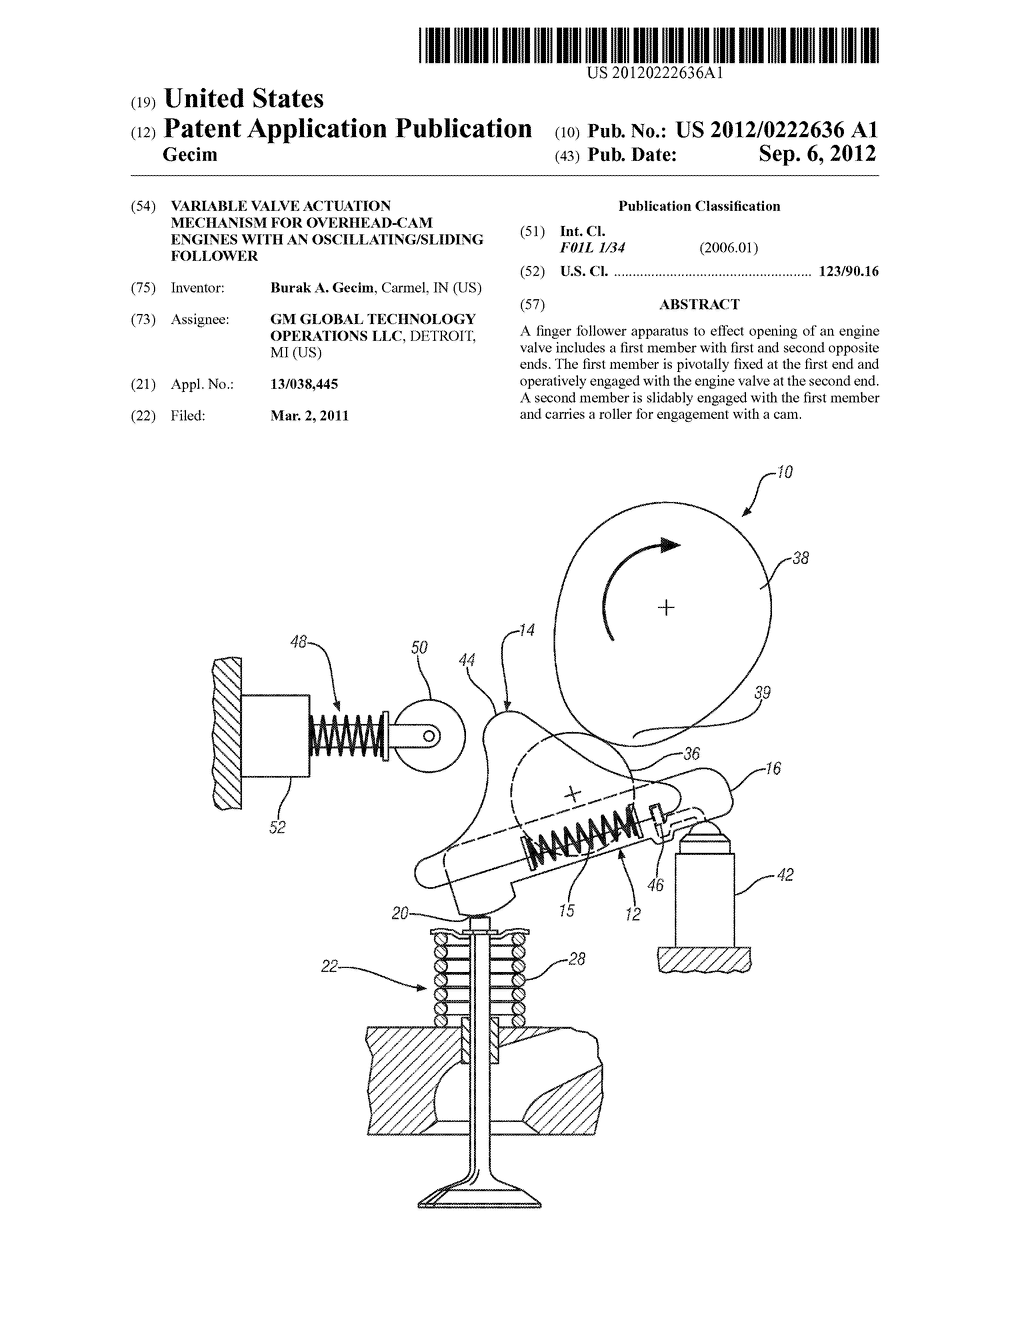 hight resolution of variable valve actuation mechanism for overhead cam engines with an oscillating sliding follower diagram schematic and image 01